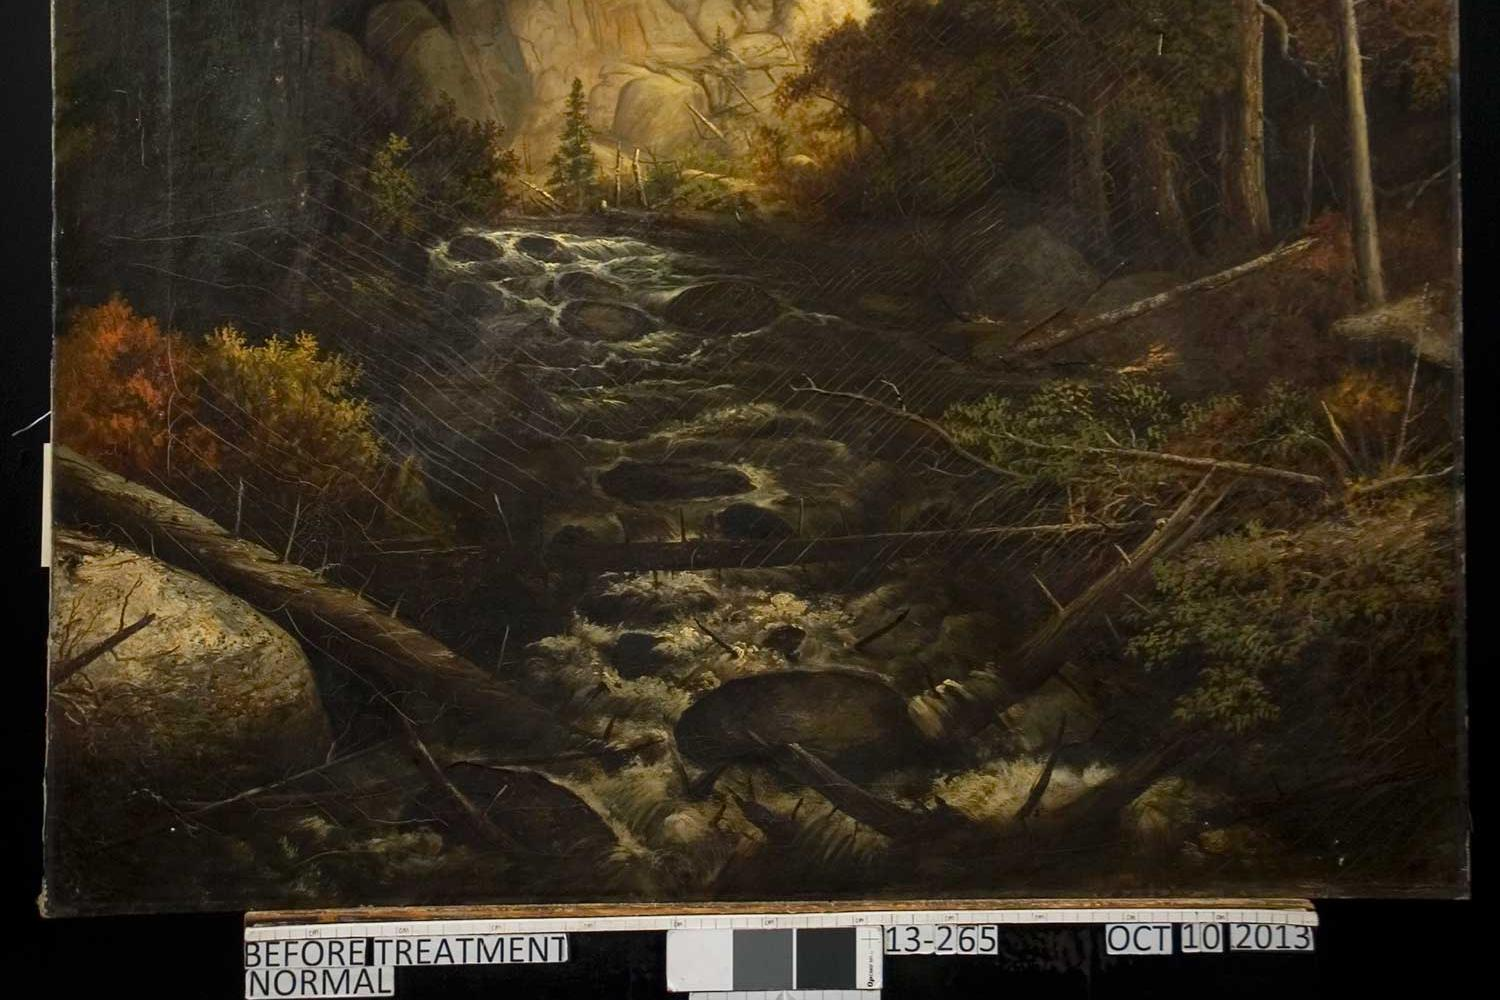 Painting of Mountain stream with trees